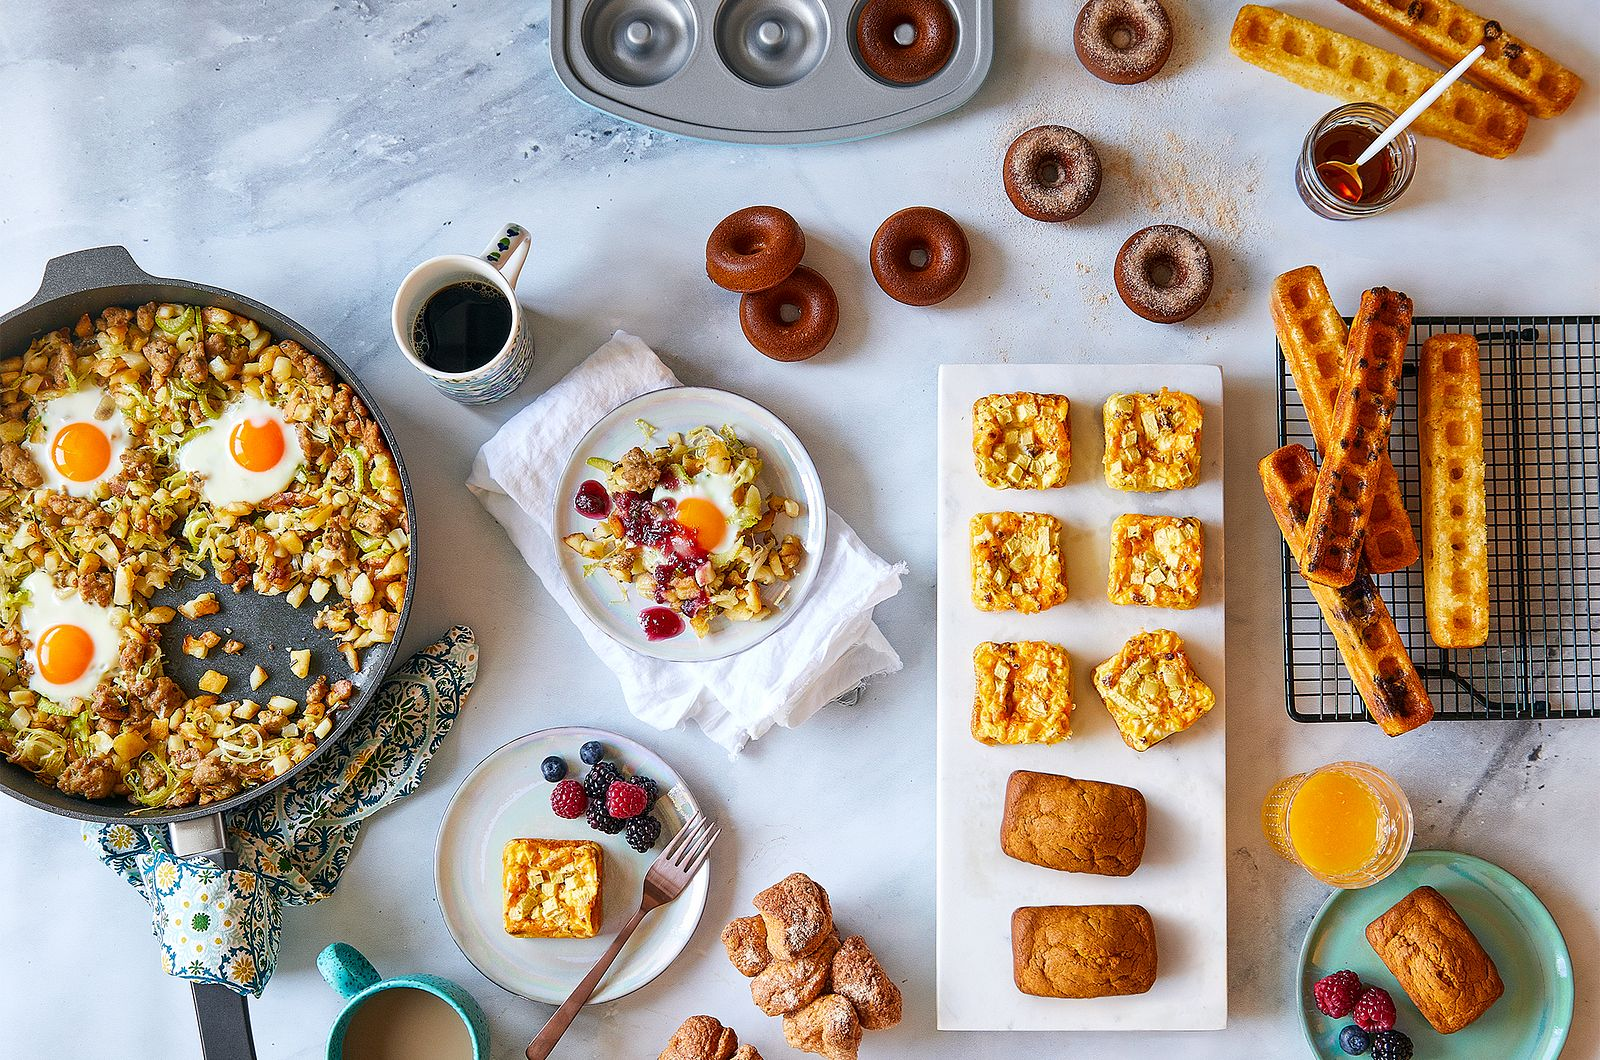 5 Steps for a Stress-Free Holiday Brunch